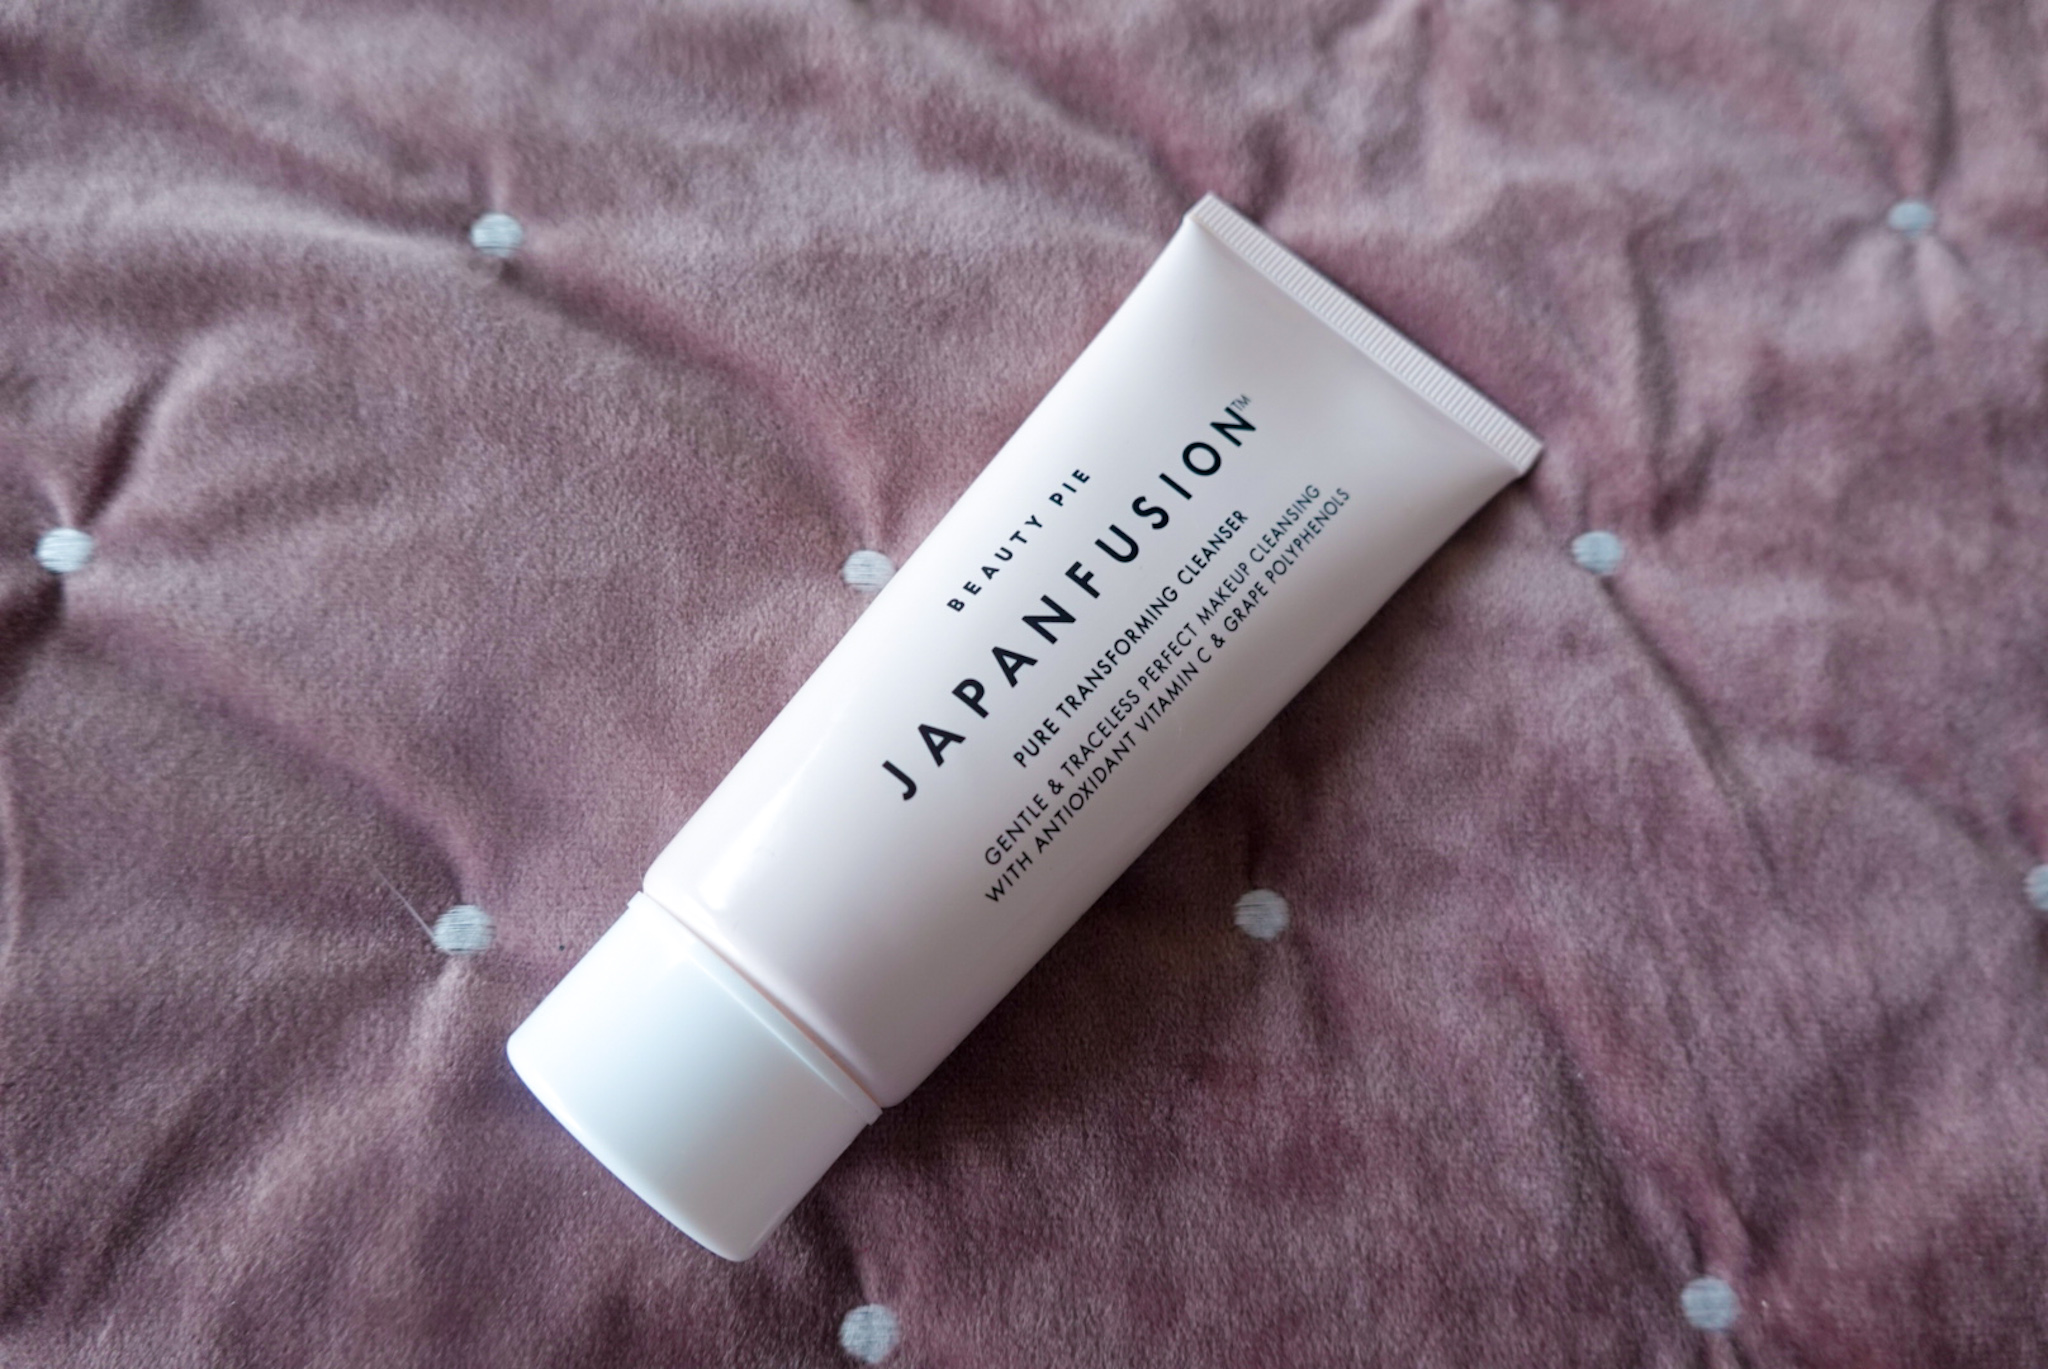 Beauty Pie Japanfusion pure transforming cleanser